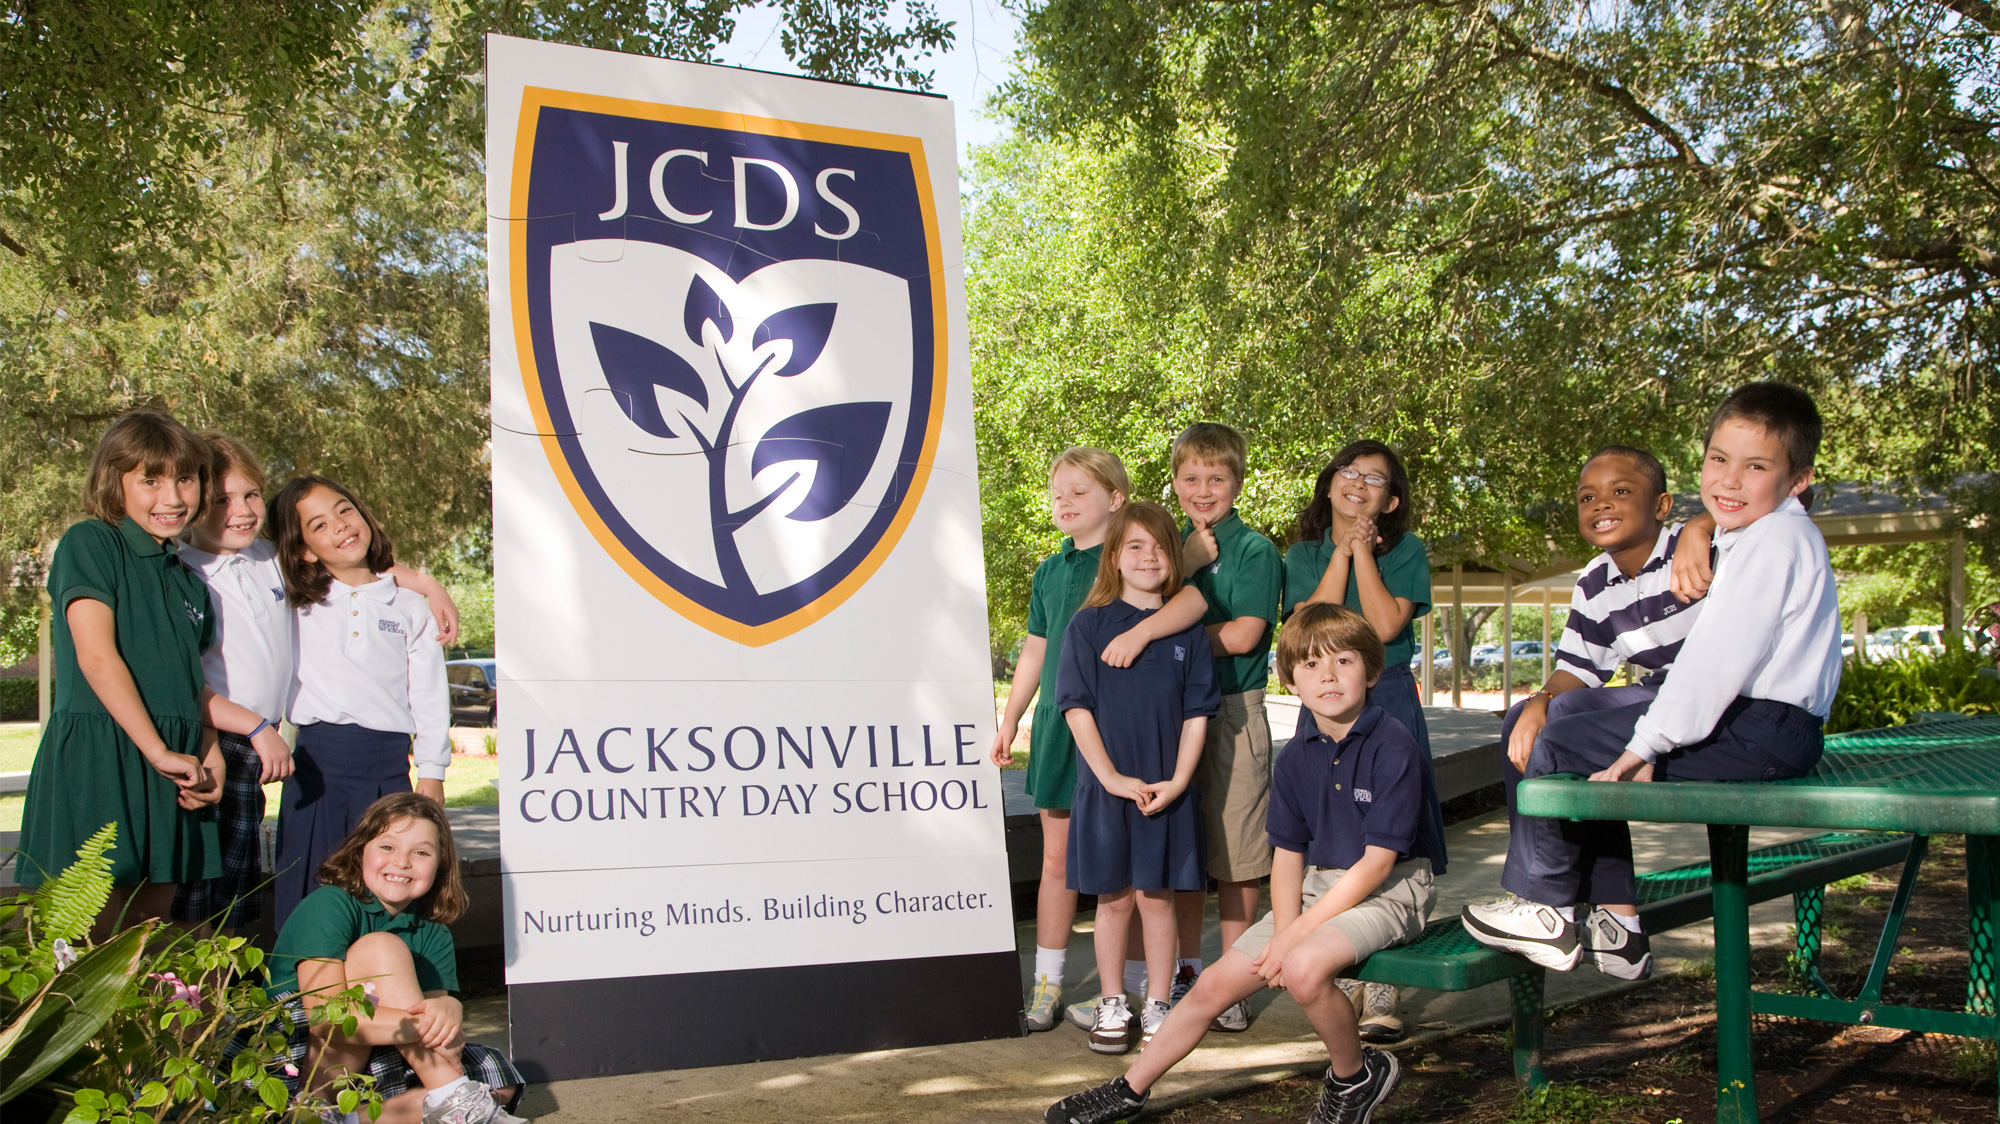 Jacksonville Country Day School logo on a banner surrounded by children